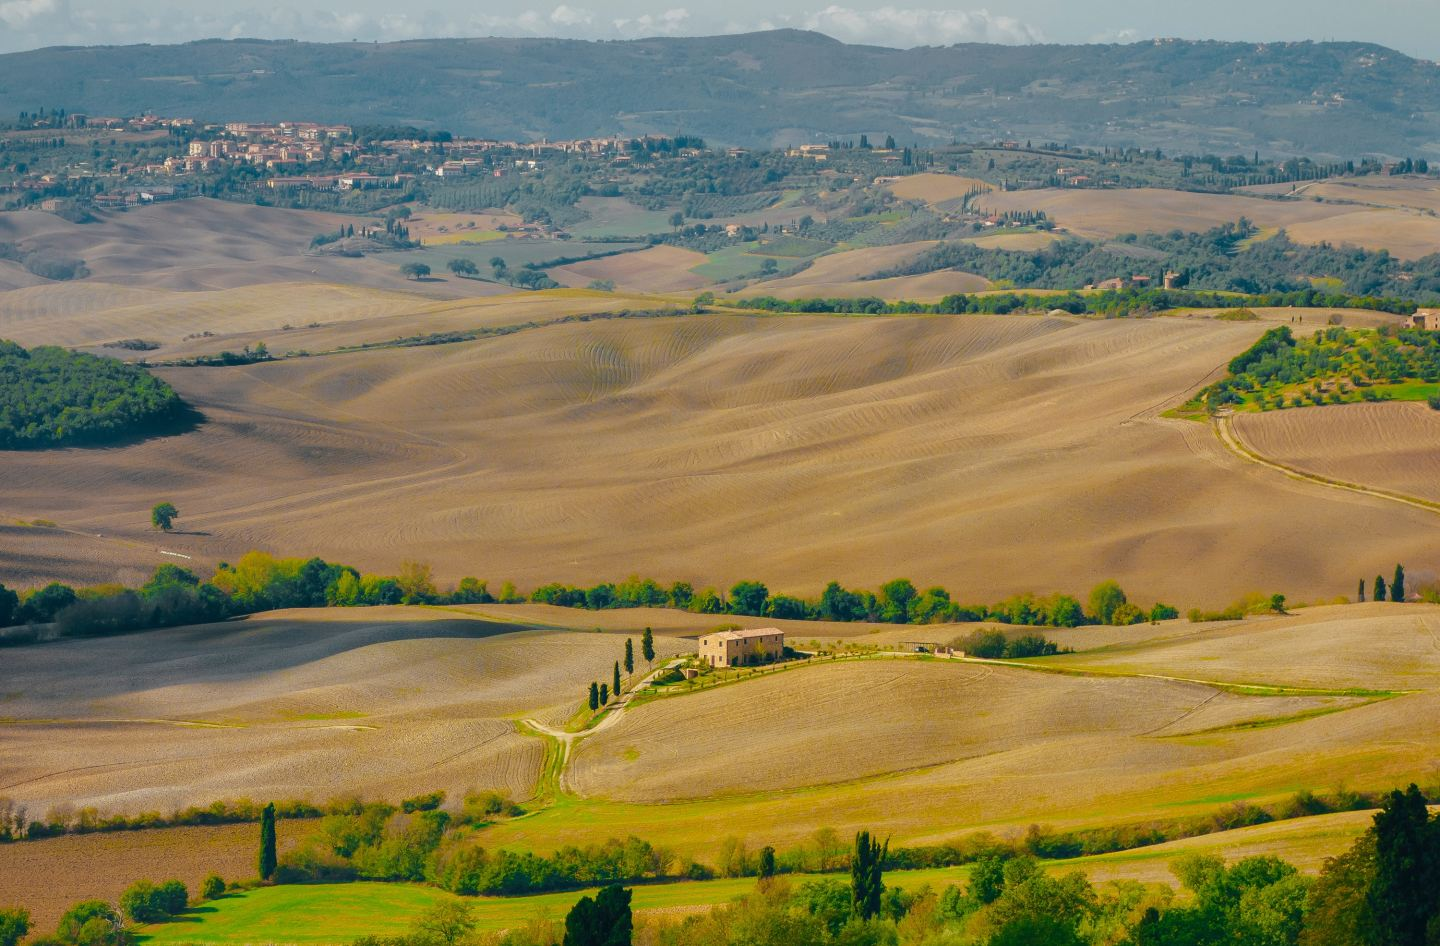 And the heat blazes from the Tuscan Valley